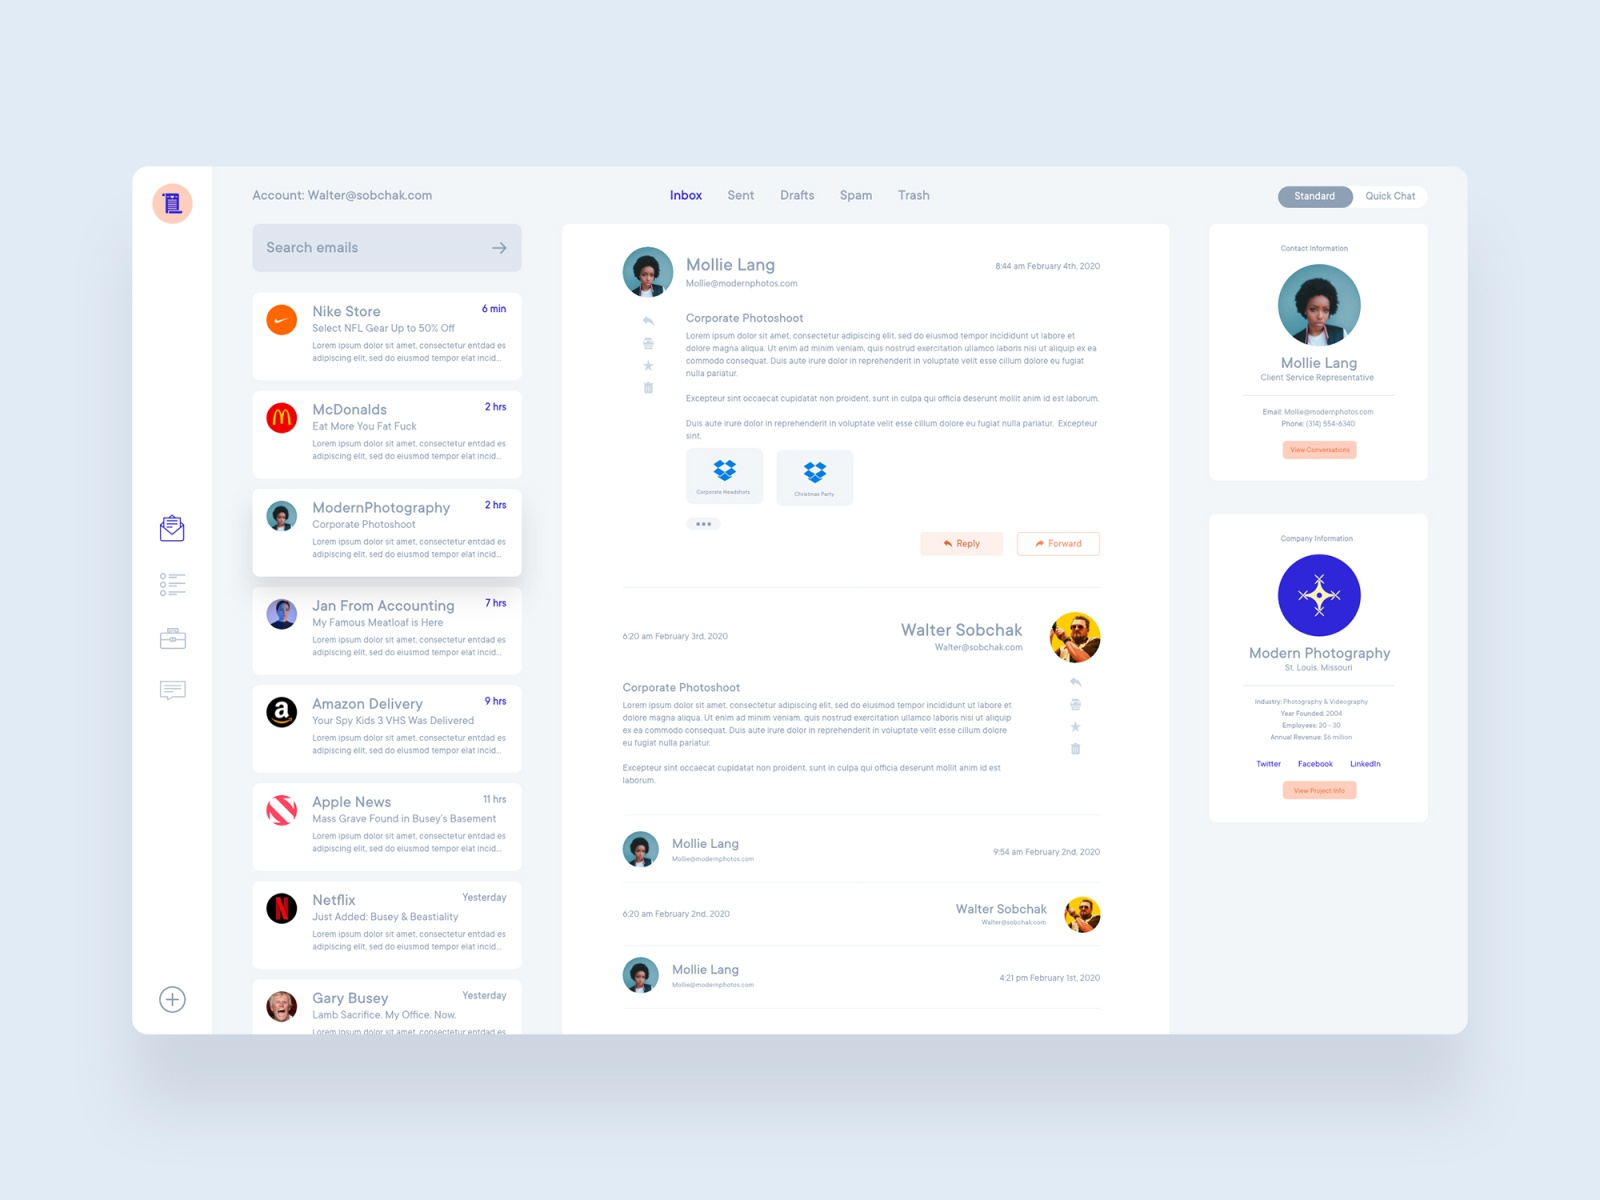 Email Client Web App By Matt Mckenna For Delt On Dribbble